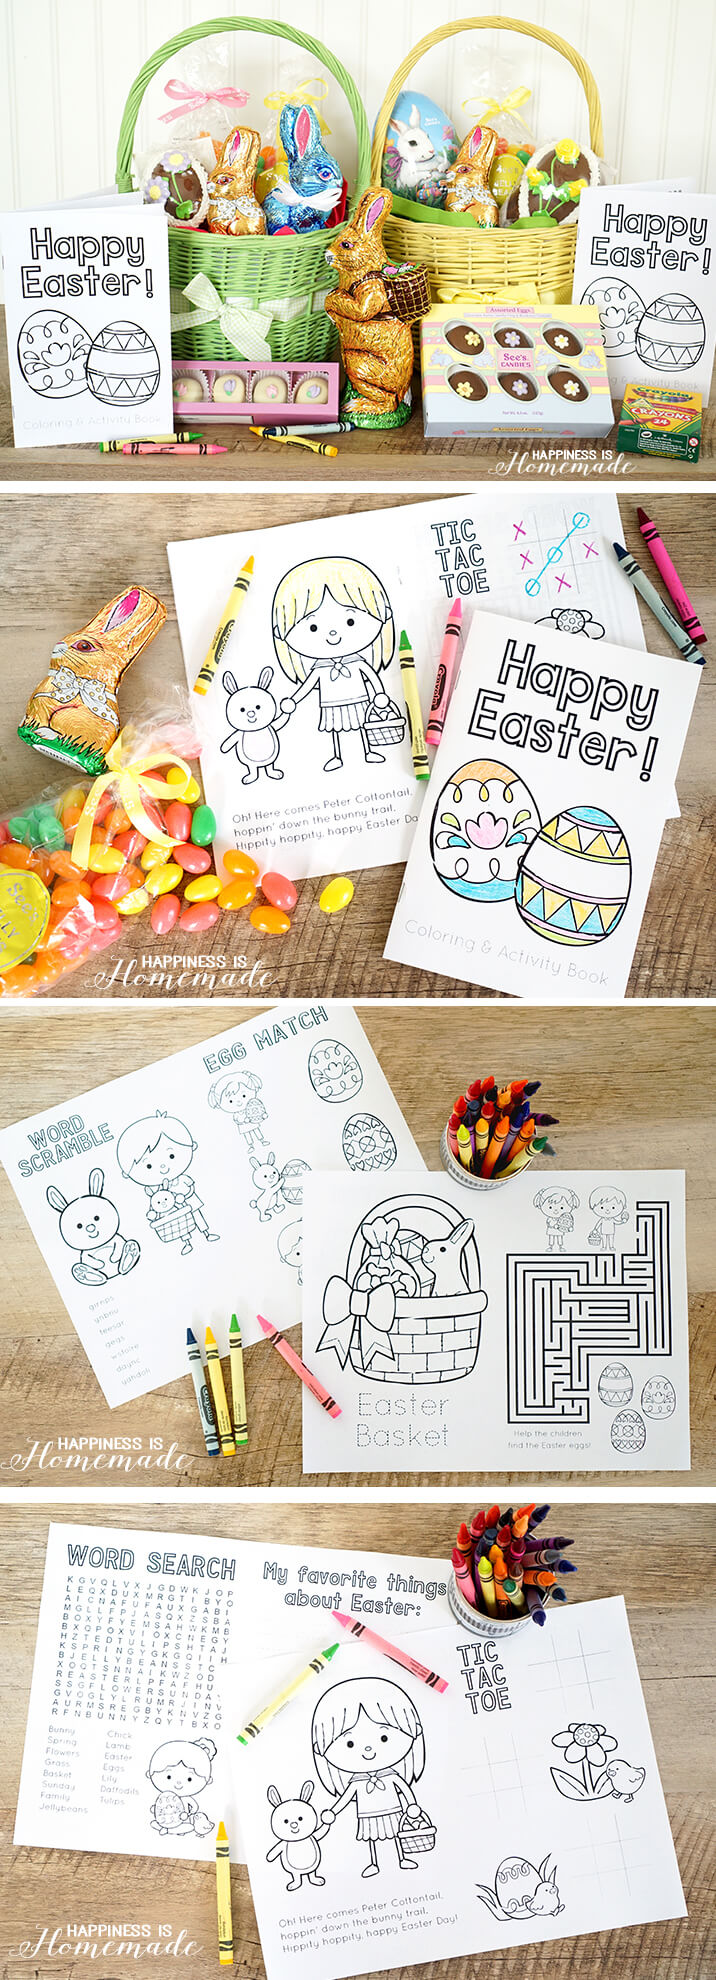 Free Printable Easter Coloring and Activity Book - great Easter basket stuffer